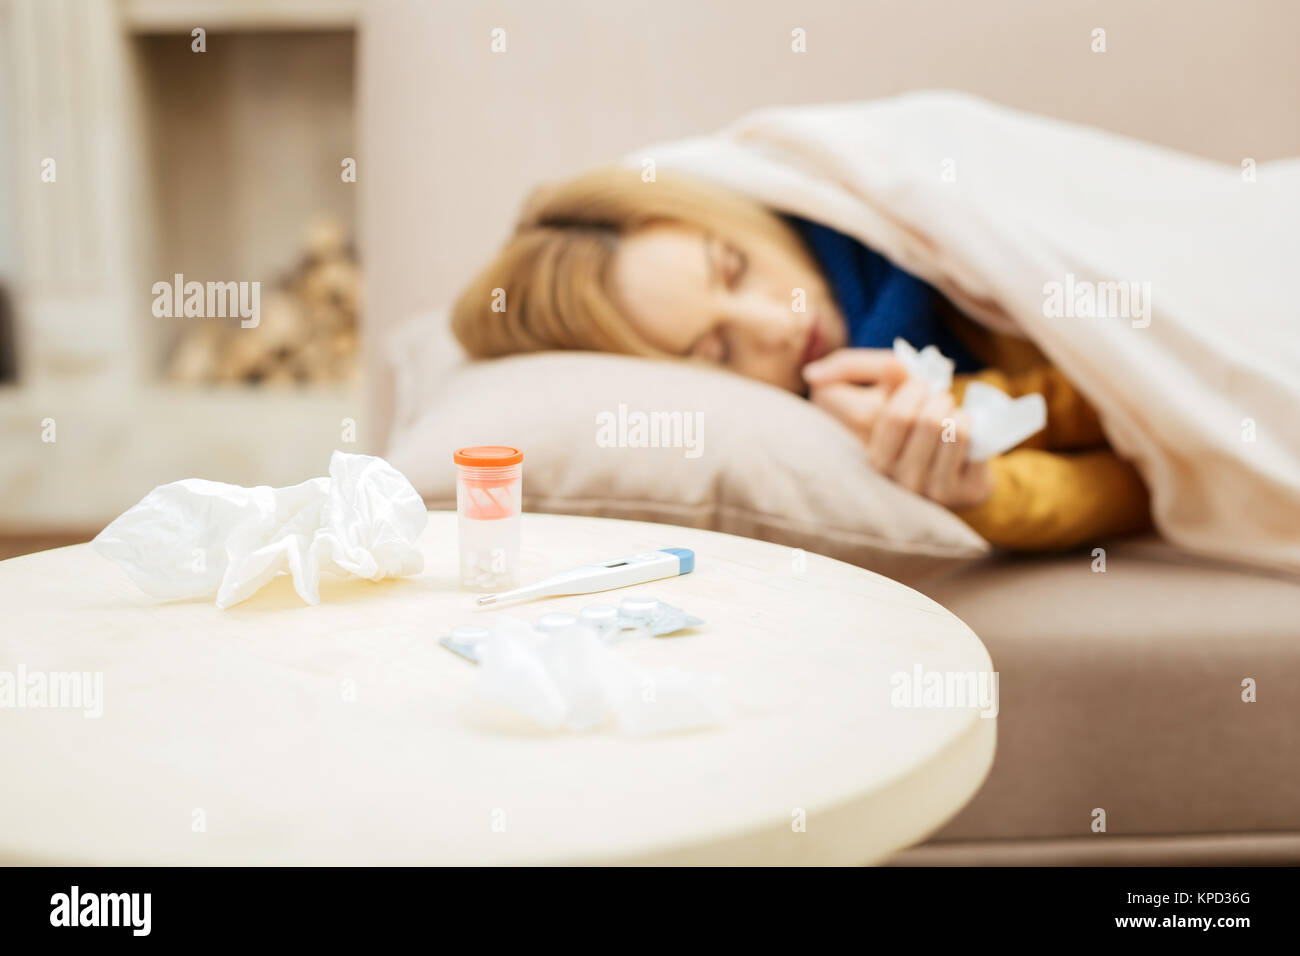 Unwell woman taking a nap to recover soon - Stock Image